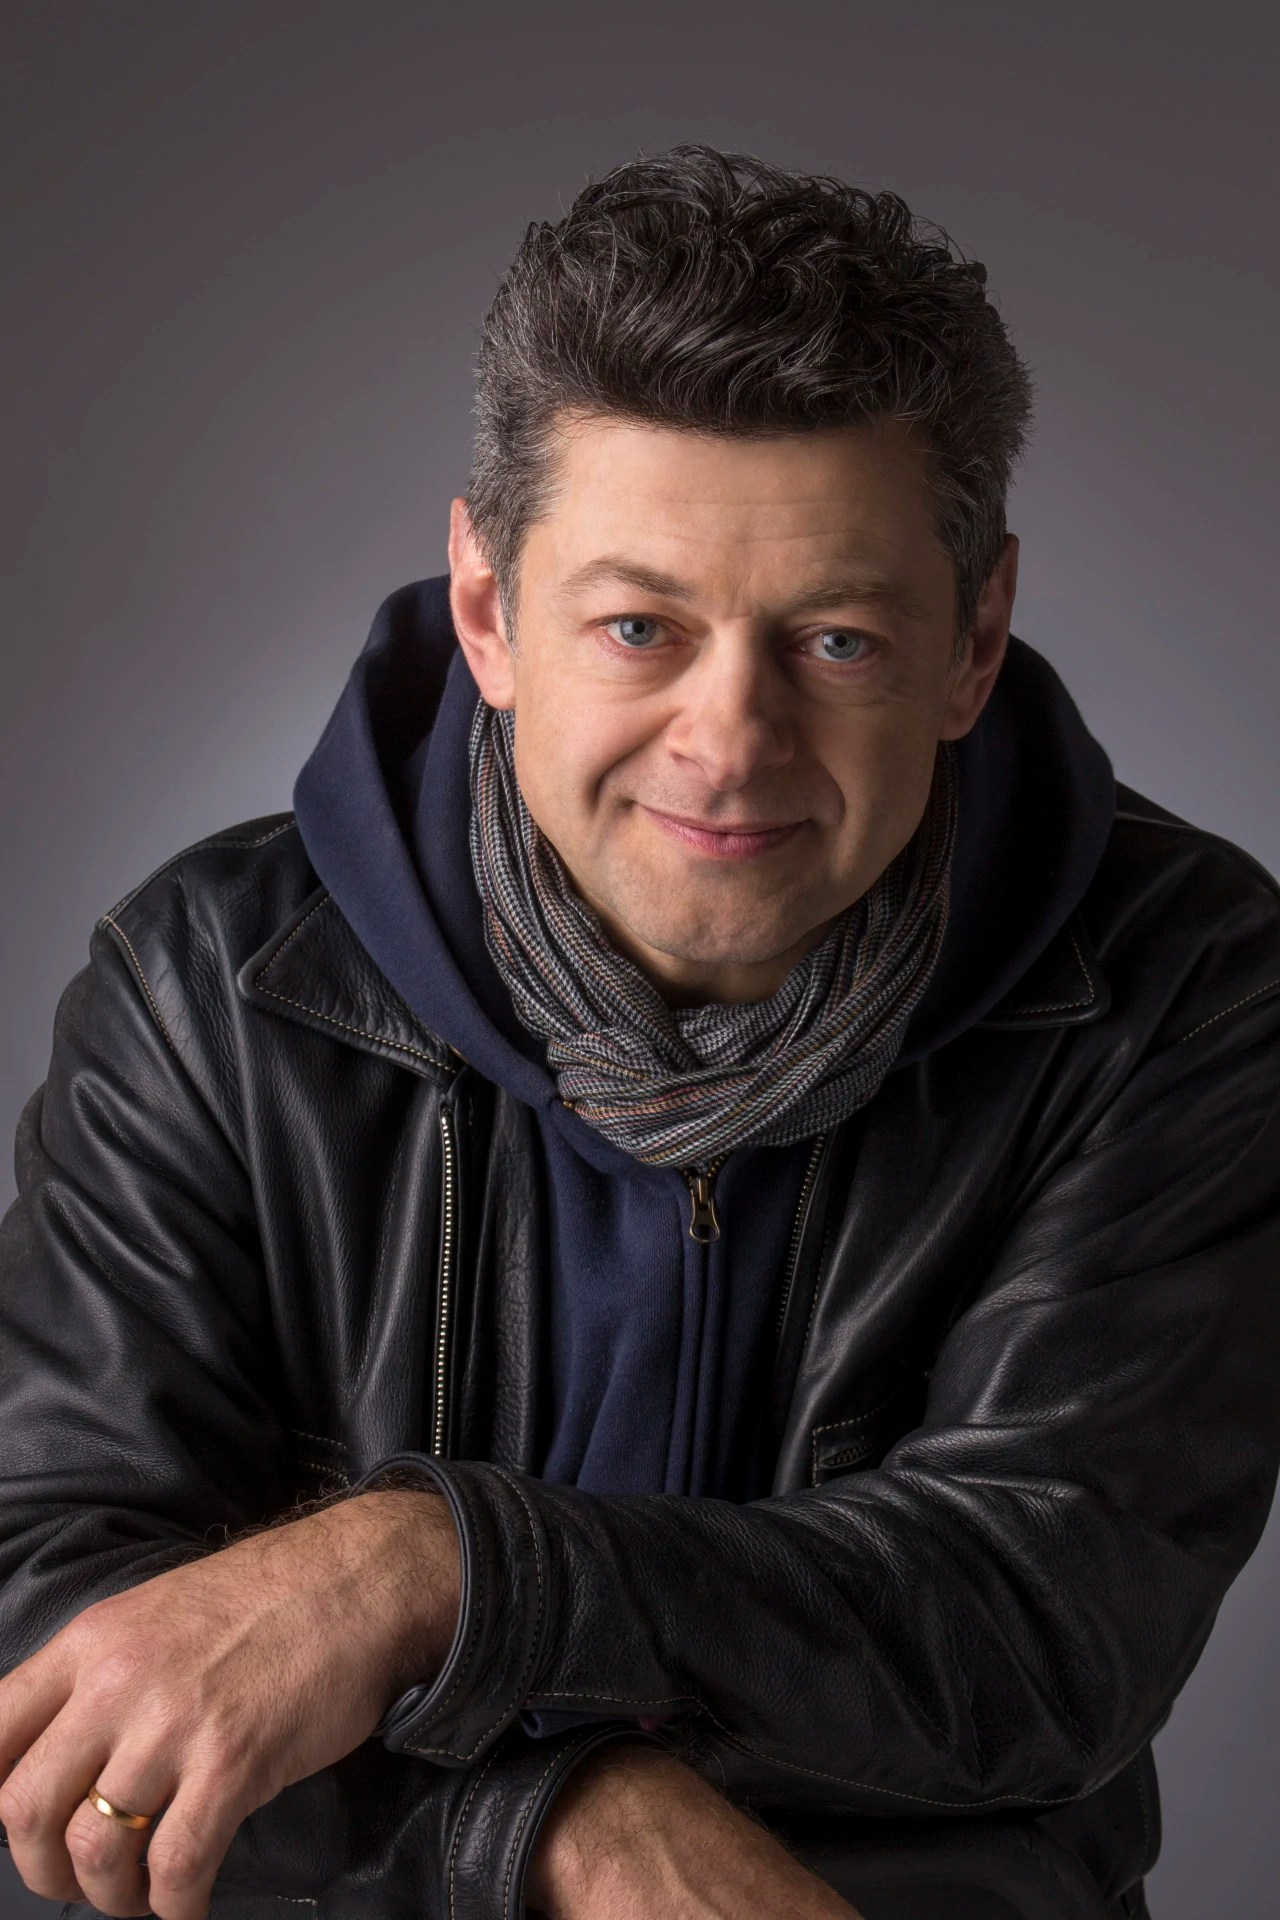 Star Wars Andy Serkis